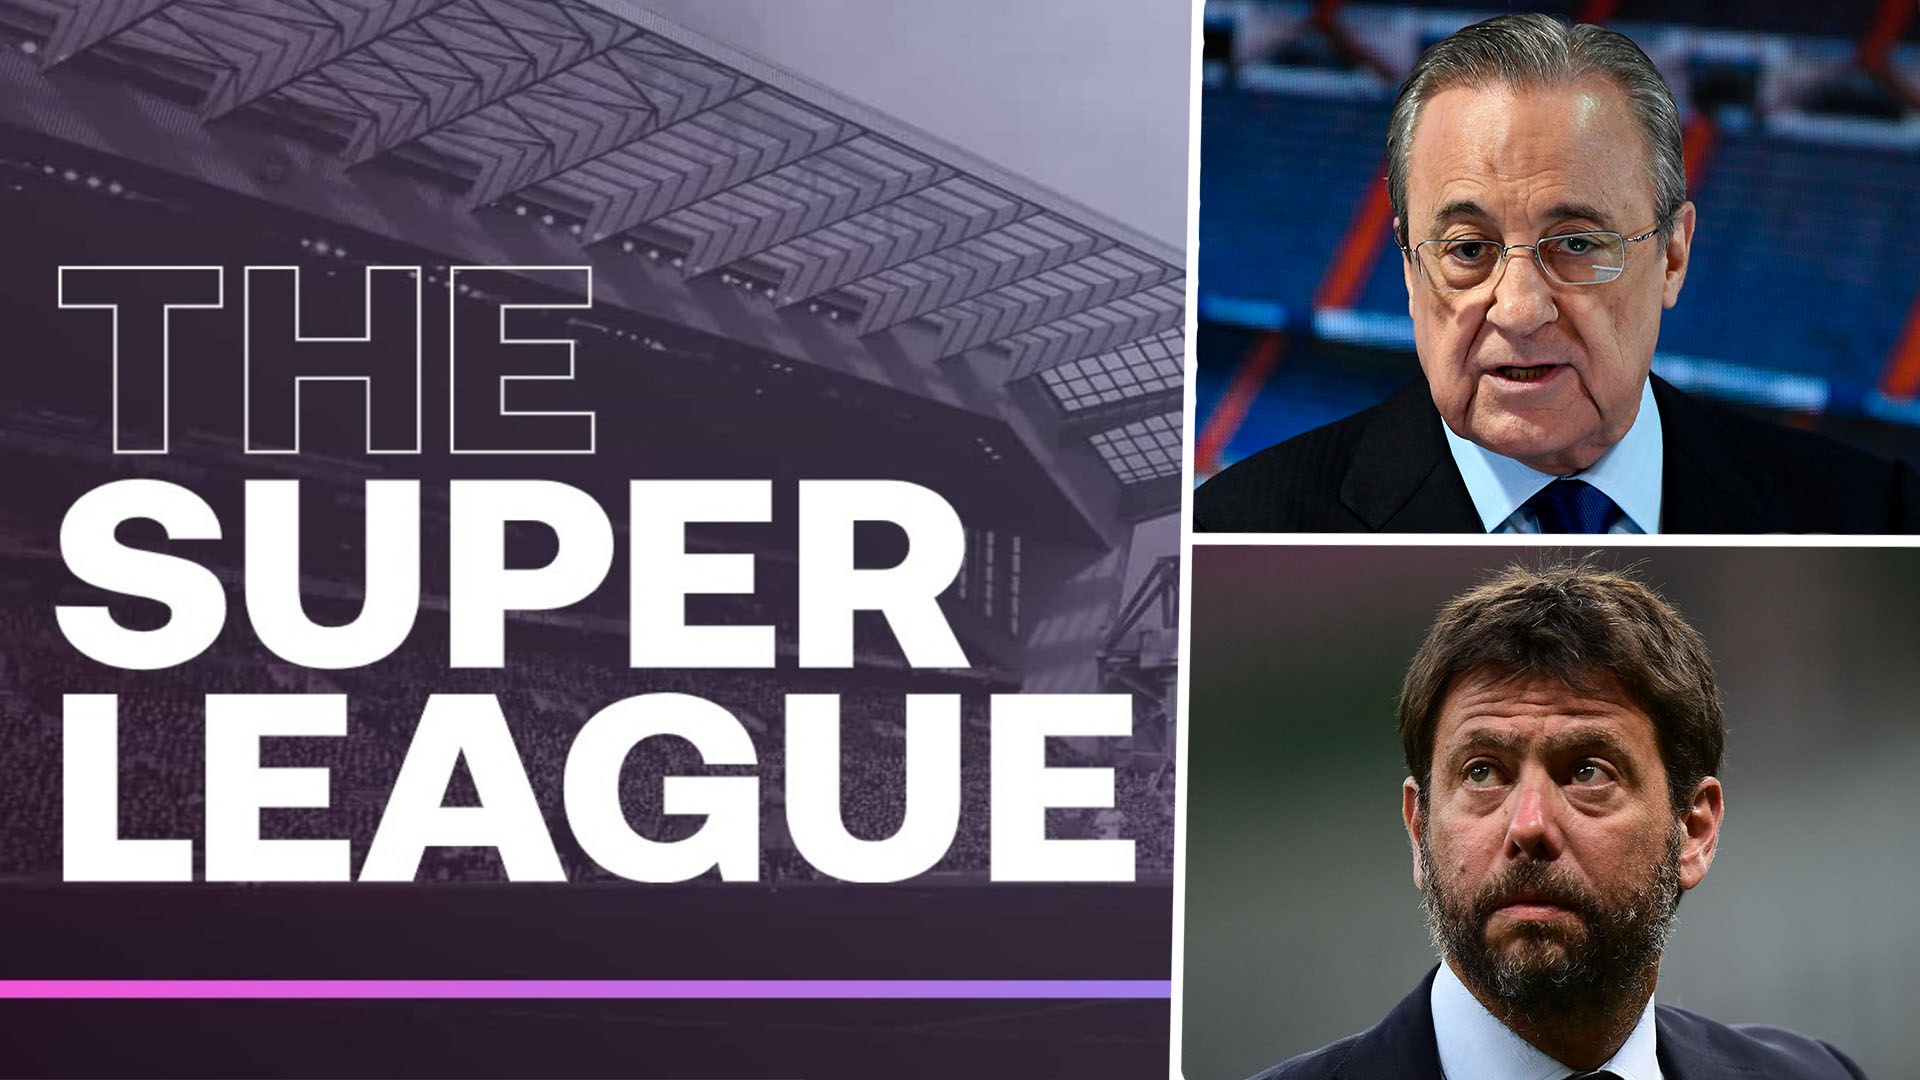 UEFA delays Super League punishment for Barcelona, Real Madrid and Juventus while Premier League clubs accept a deal